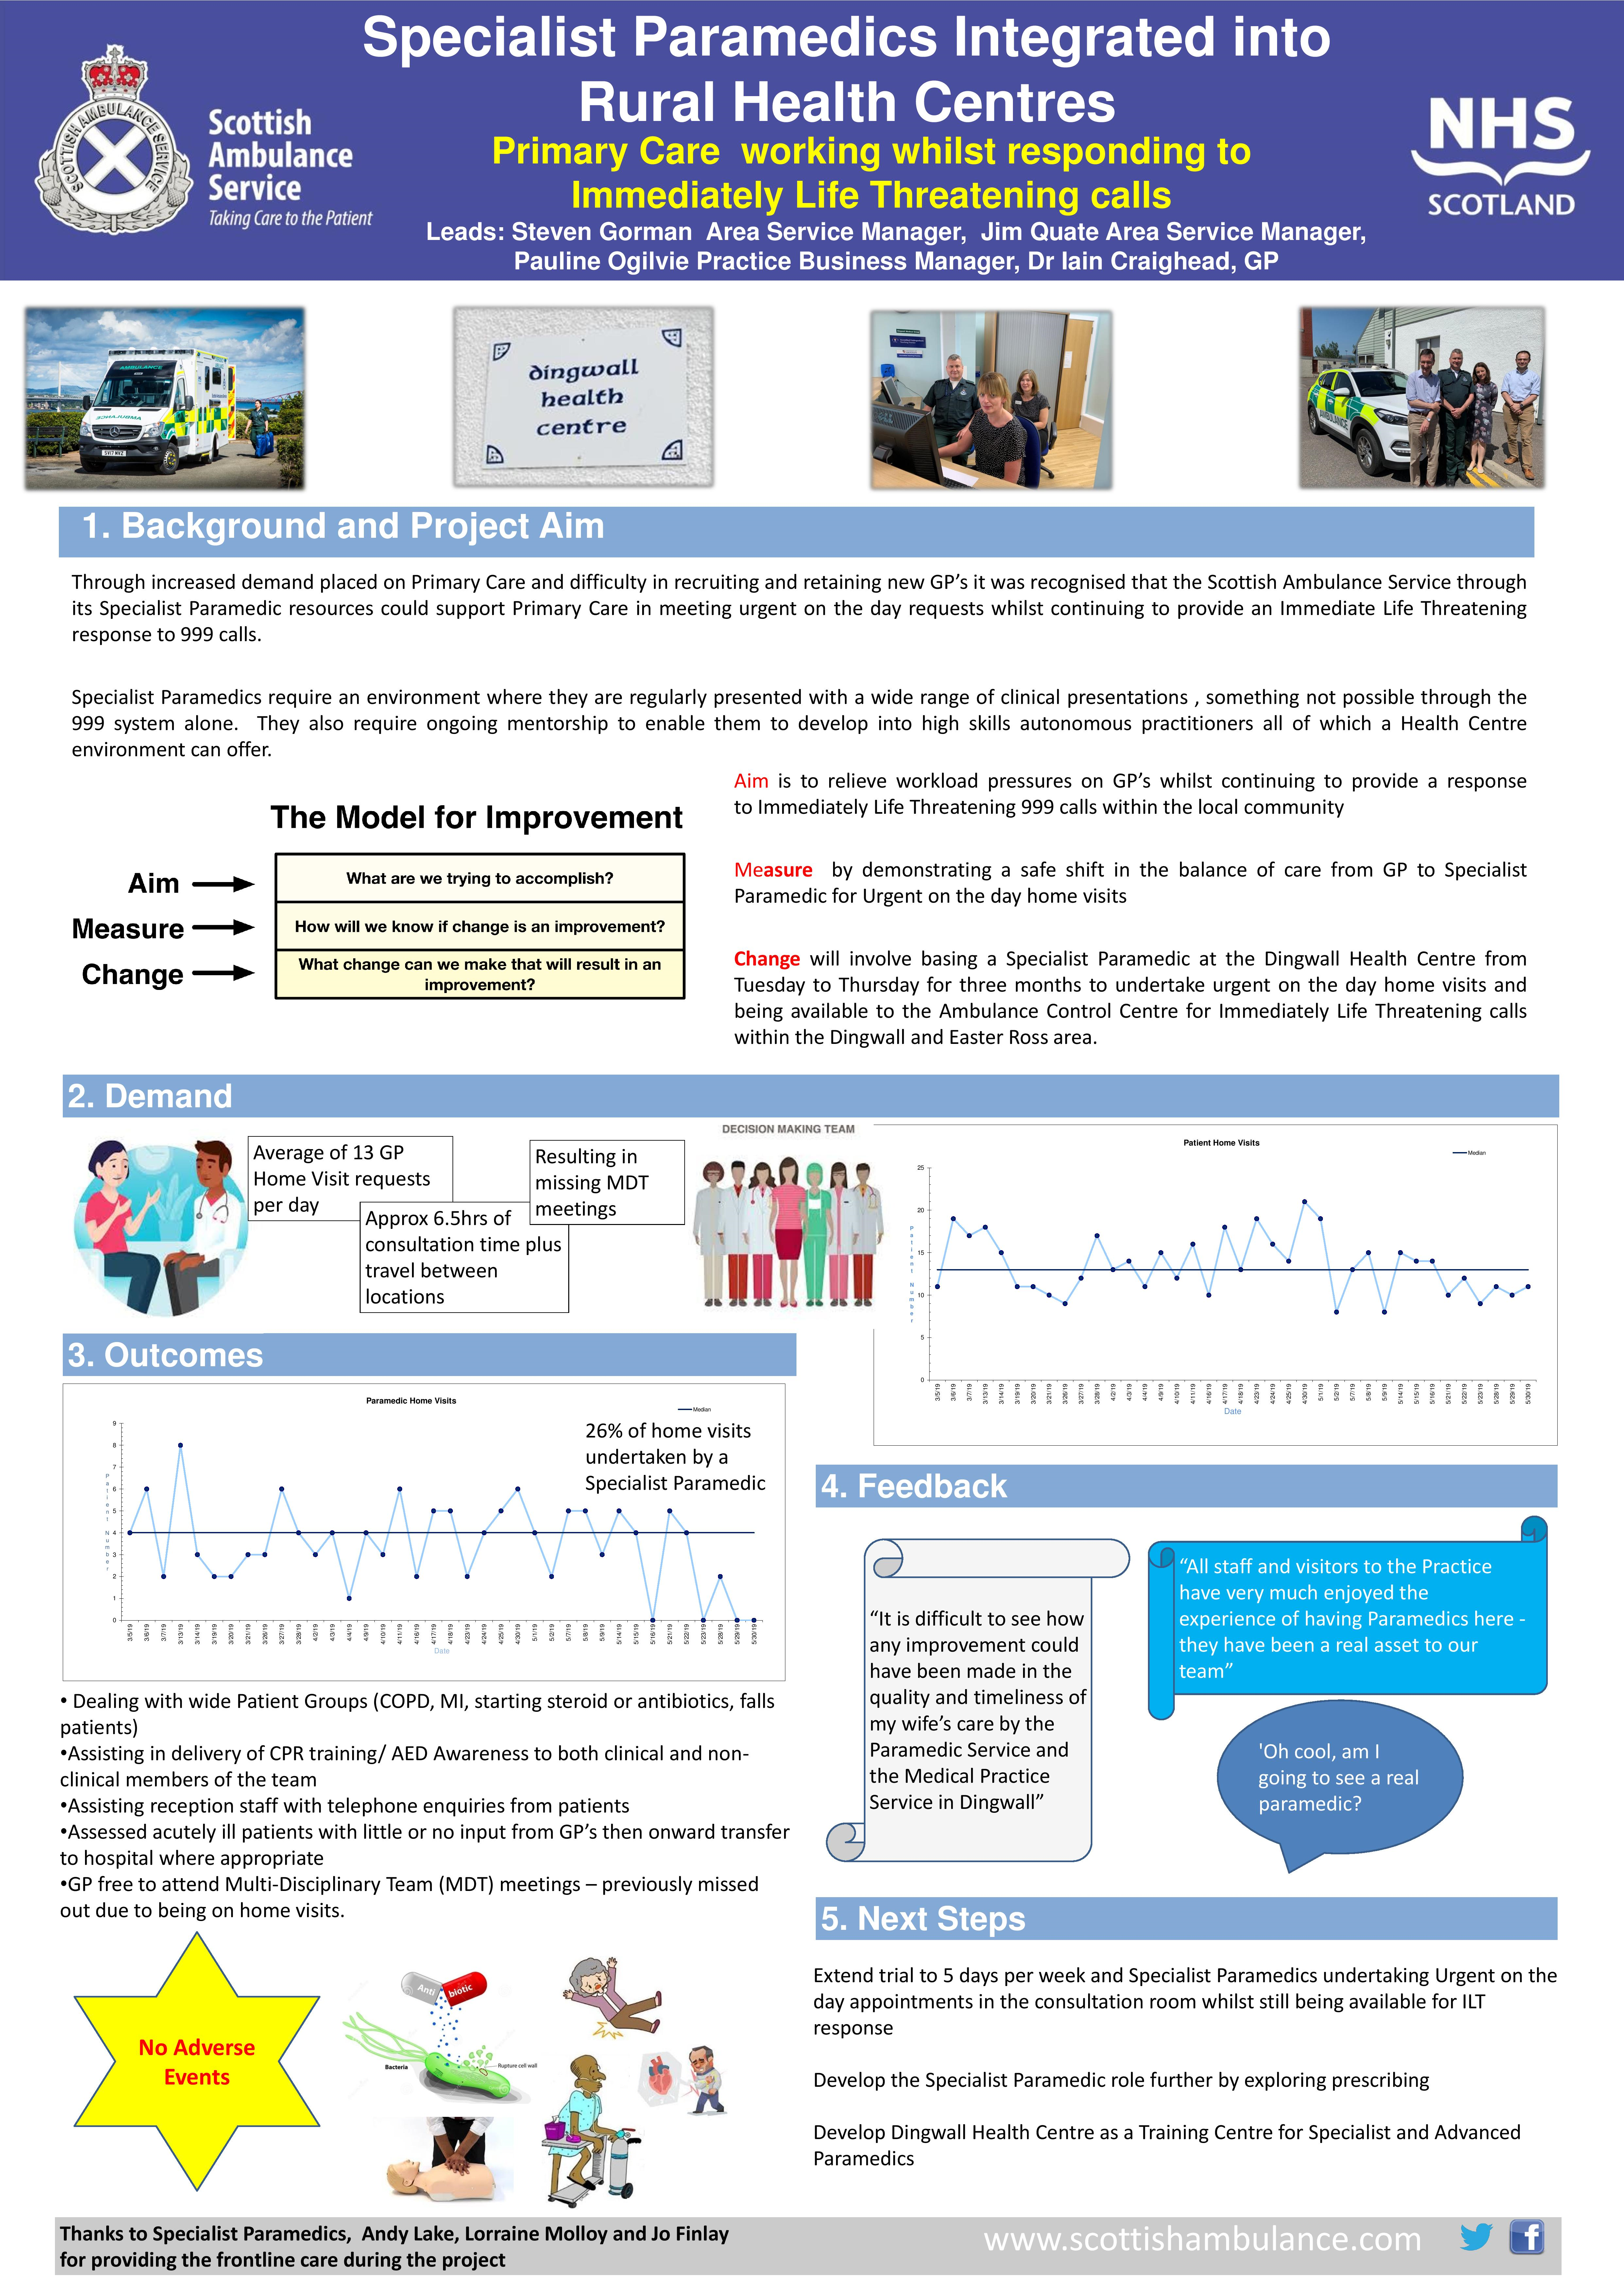 Poster Specialist Paramedic in Rural Health Centres V1-1